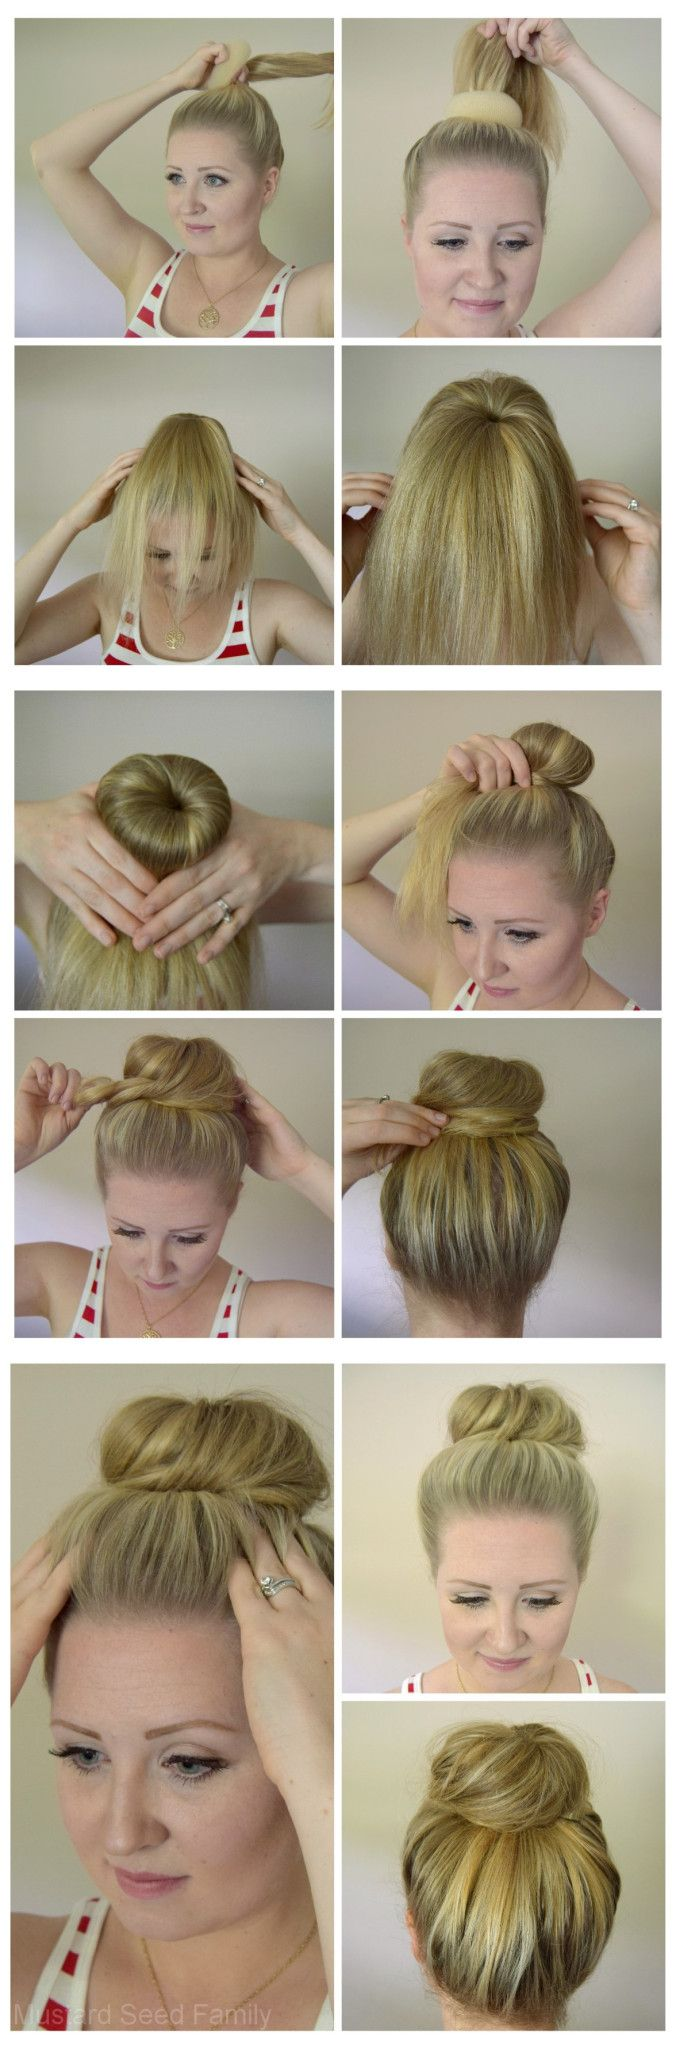 Hair Donut Tutorial Hair Donut Donut Bun Hairstyles Hair Tutorial